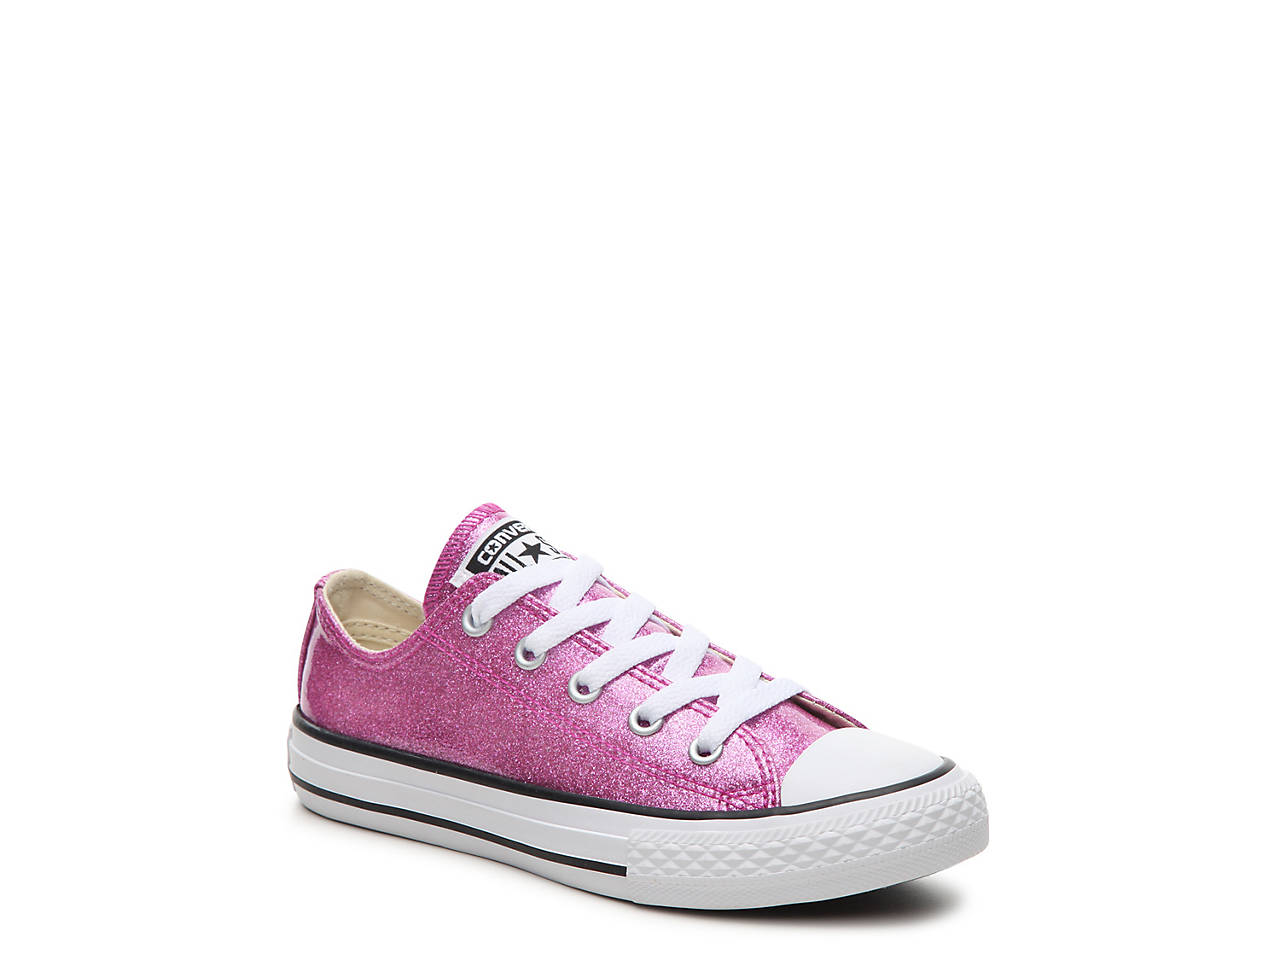 b0109f7ae28d Converse Chuck Taylor All Star Glitter Toddler   Youth Sneaker Kids ...